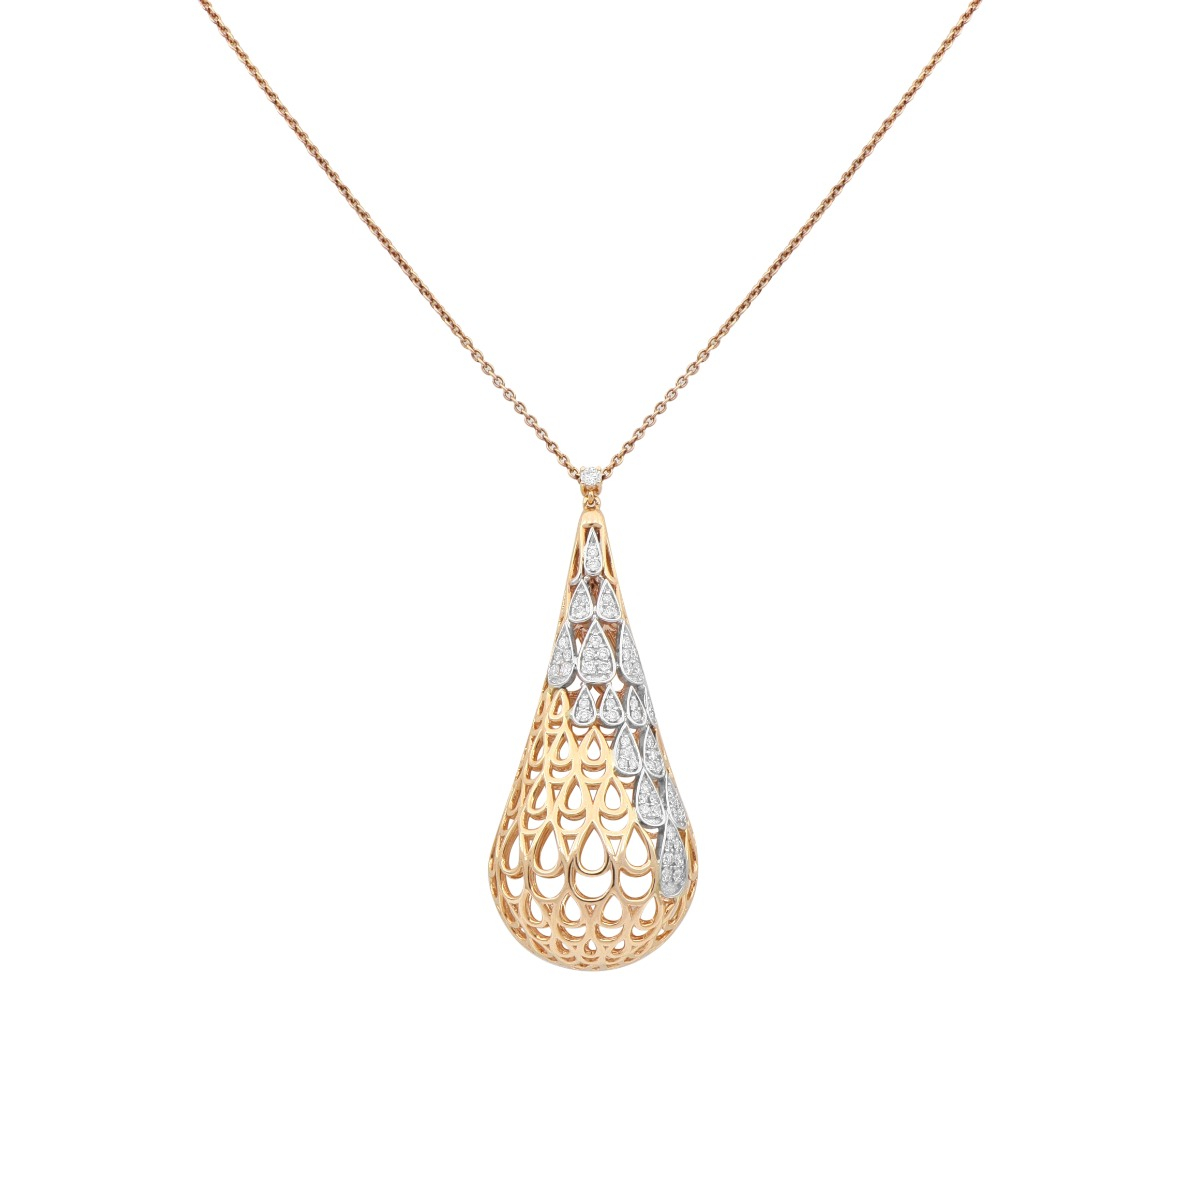 Rose and White Gold Drop Pendant Necklace